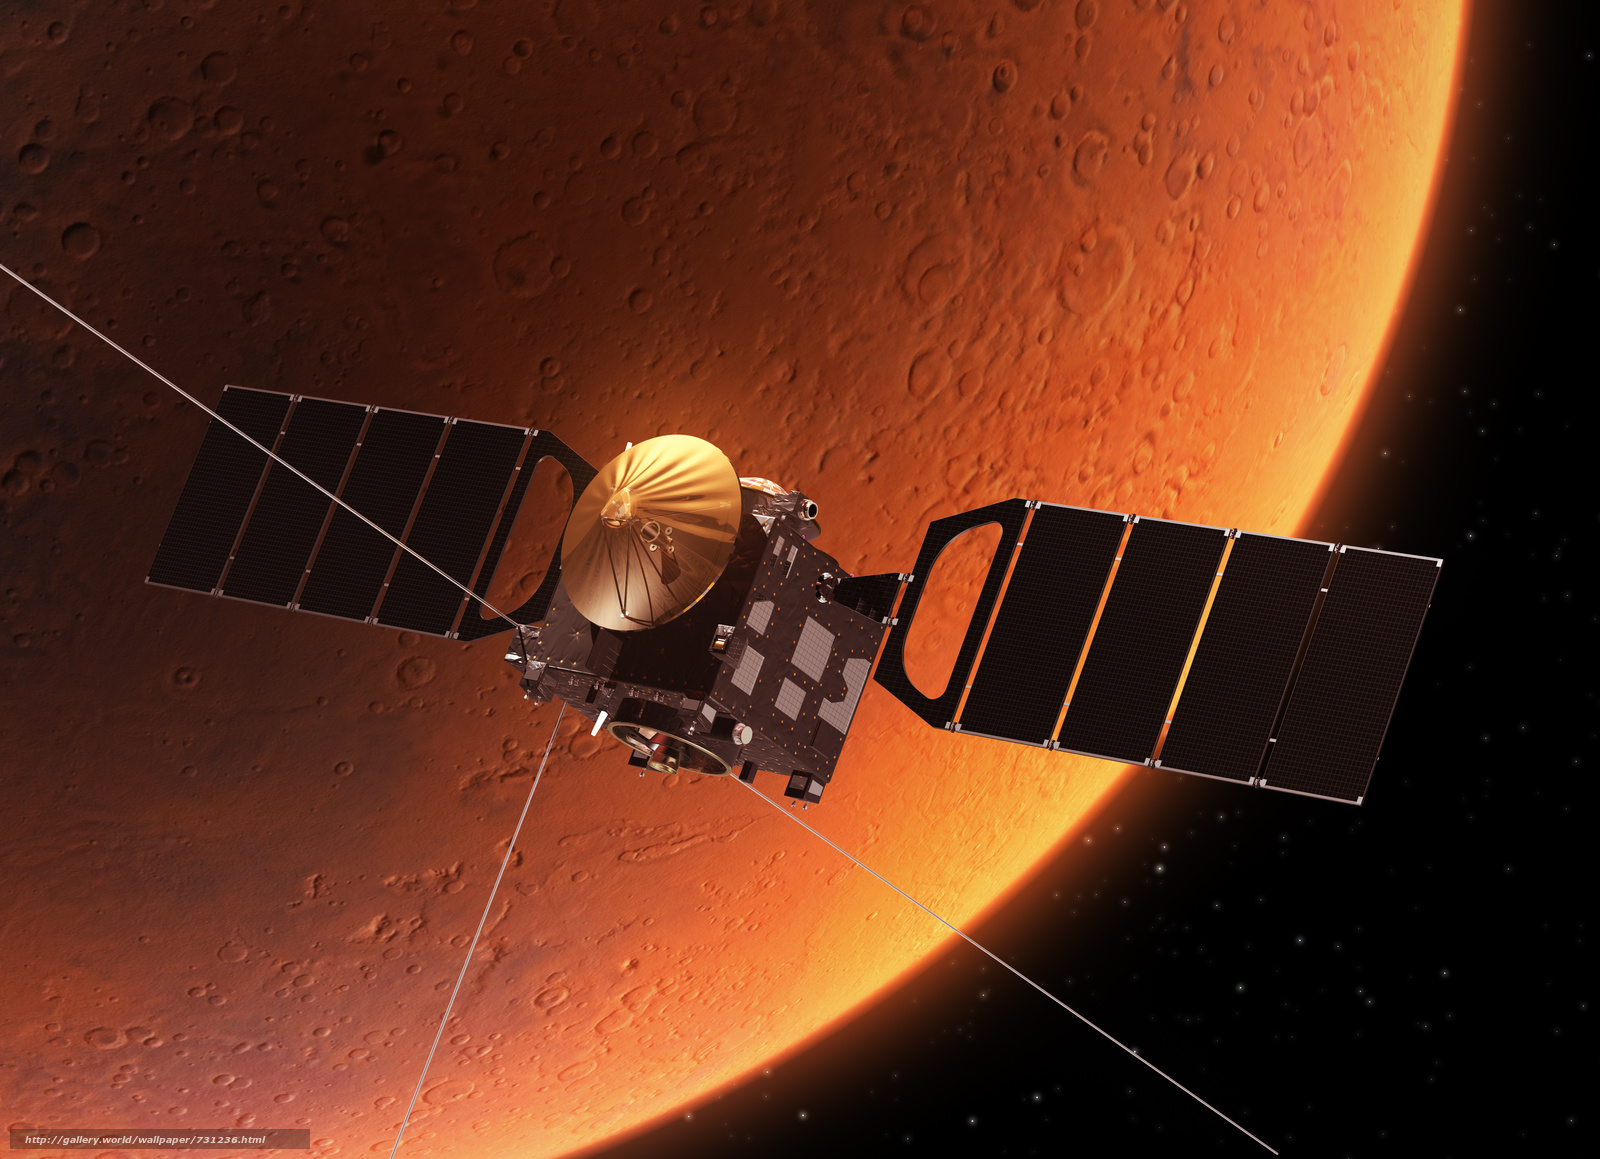 Tomorrow two spacecraft will reach Mars after nearly seven months of traveling together through space  and theyll both attempt to pull